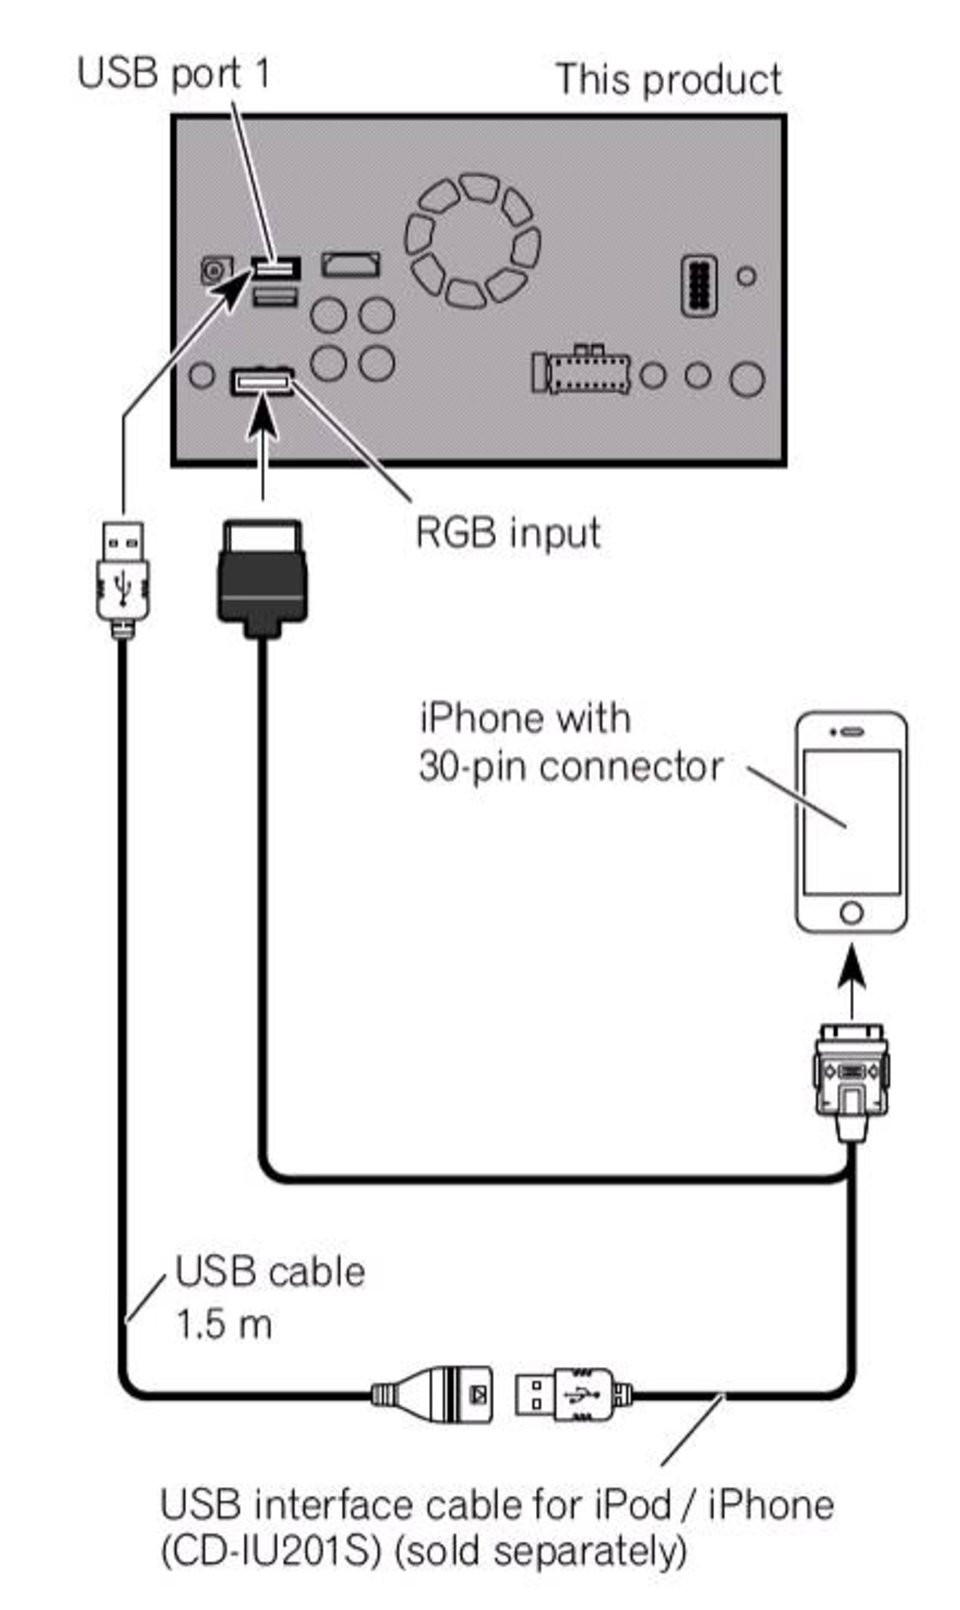 charming ipod usb cable wiring diagram ideas - electrical circuit | 1610